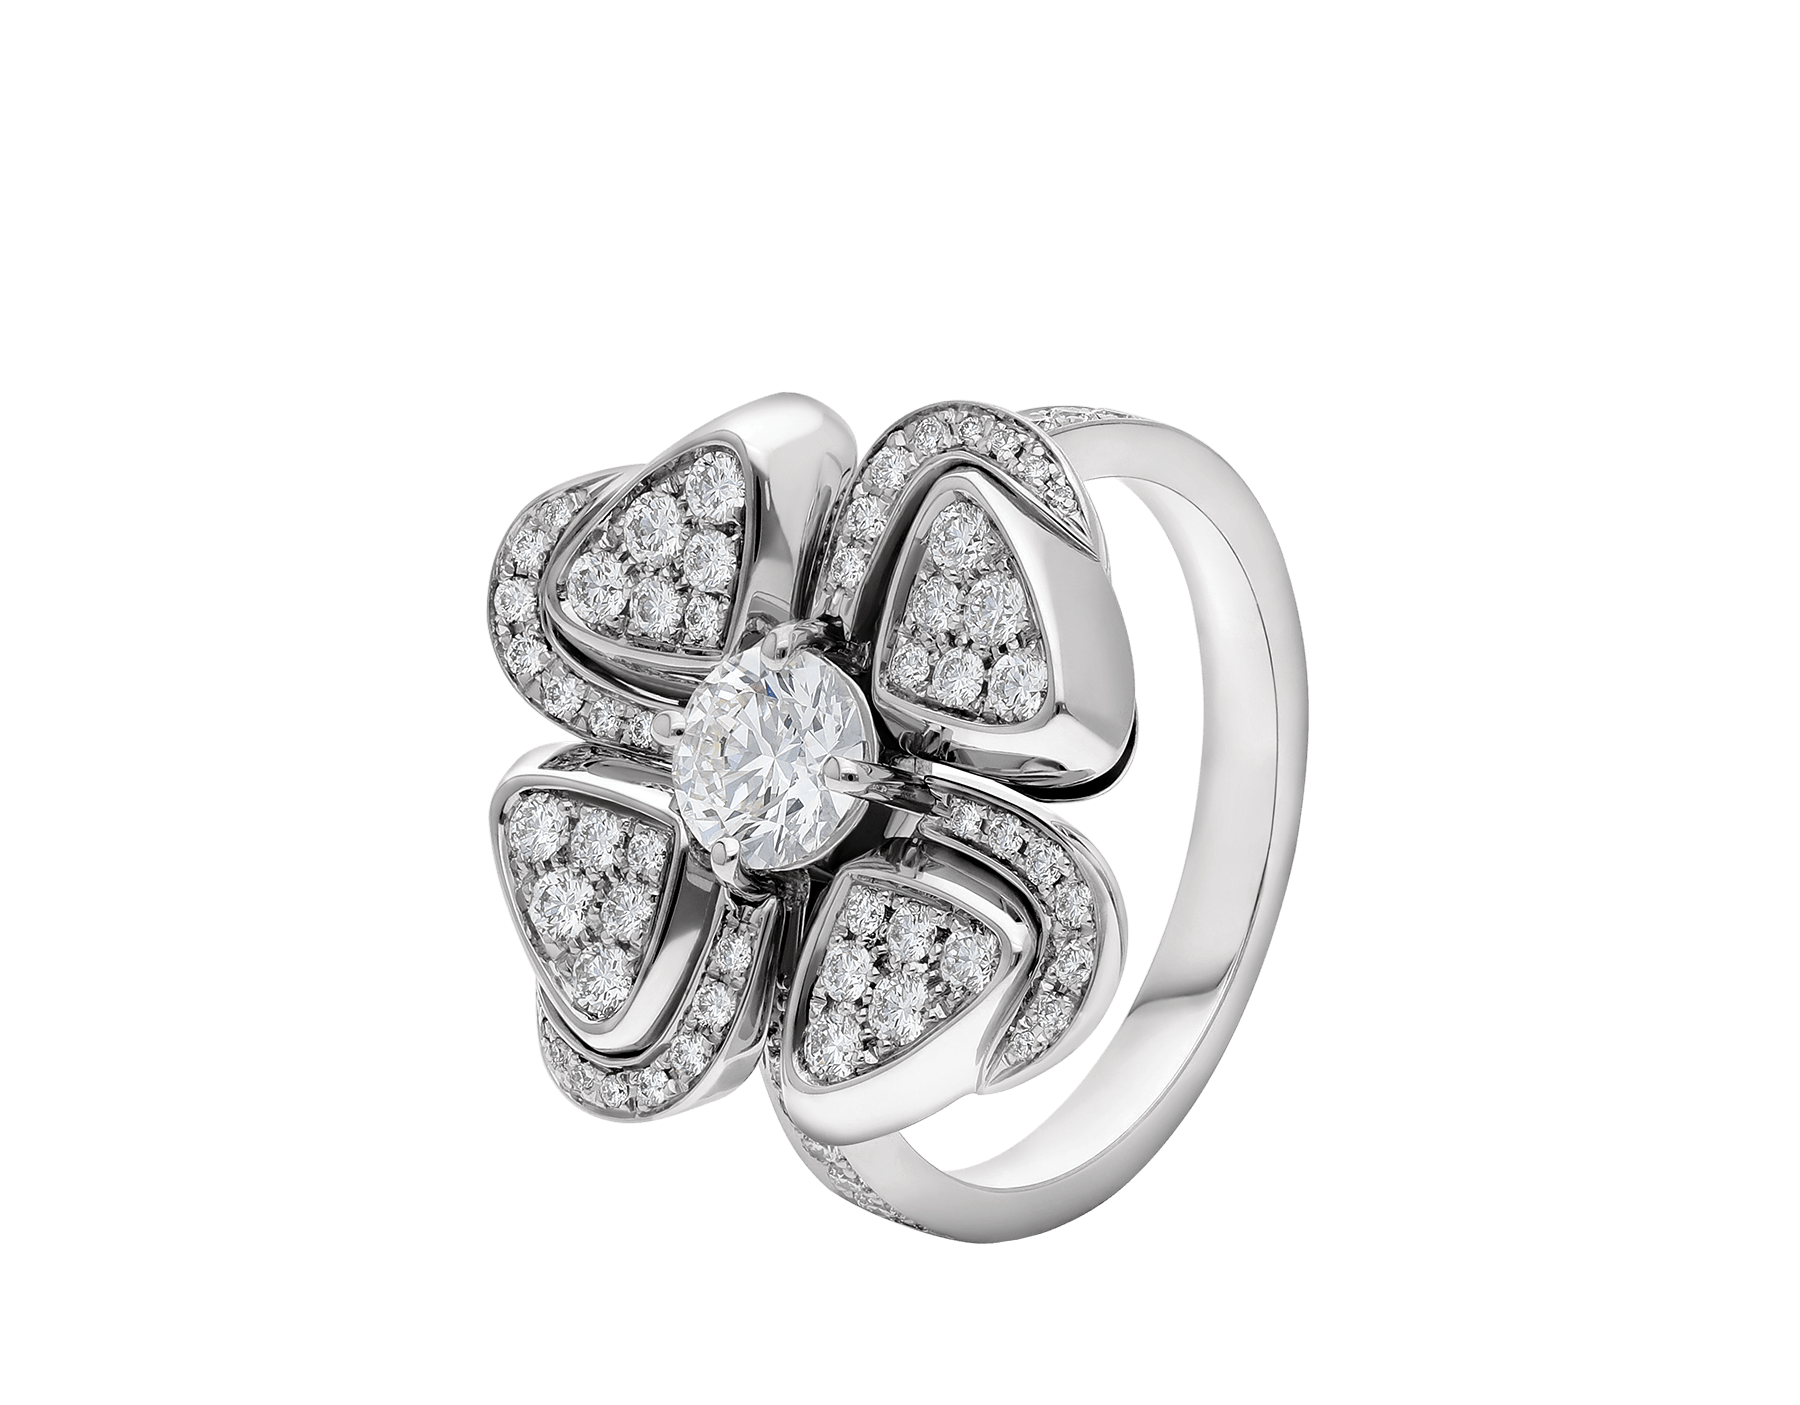 Fiorever 18 kt white gold ring set with a central diamond and pavé diamonds. AN858138 image 1